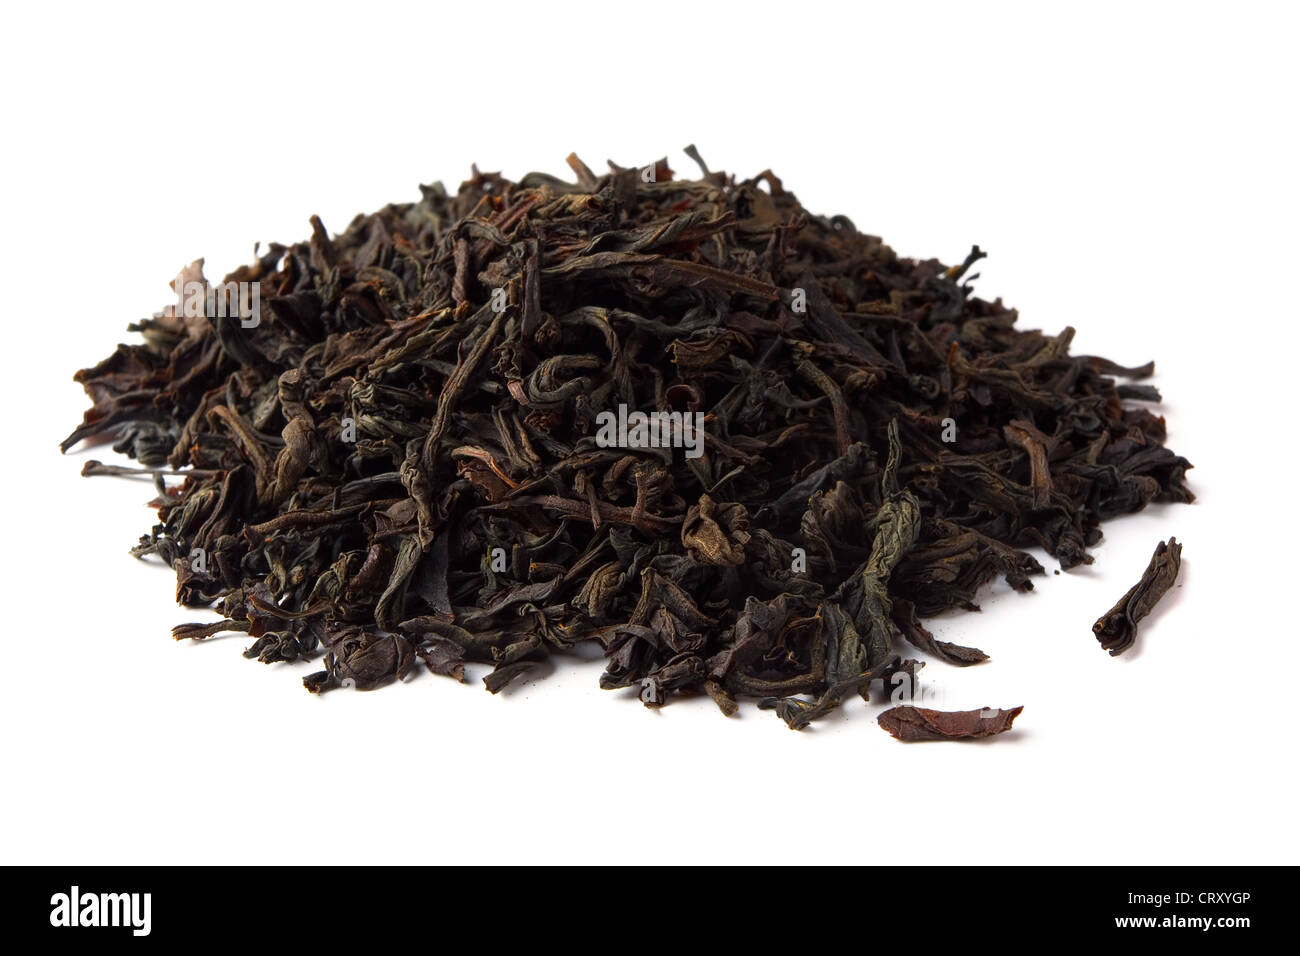 Heap of dred black tea leave isolated on white - Stock Image